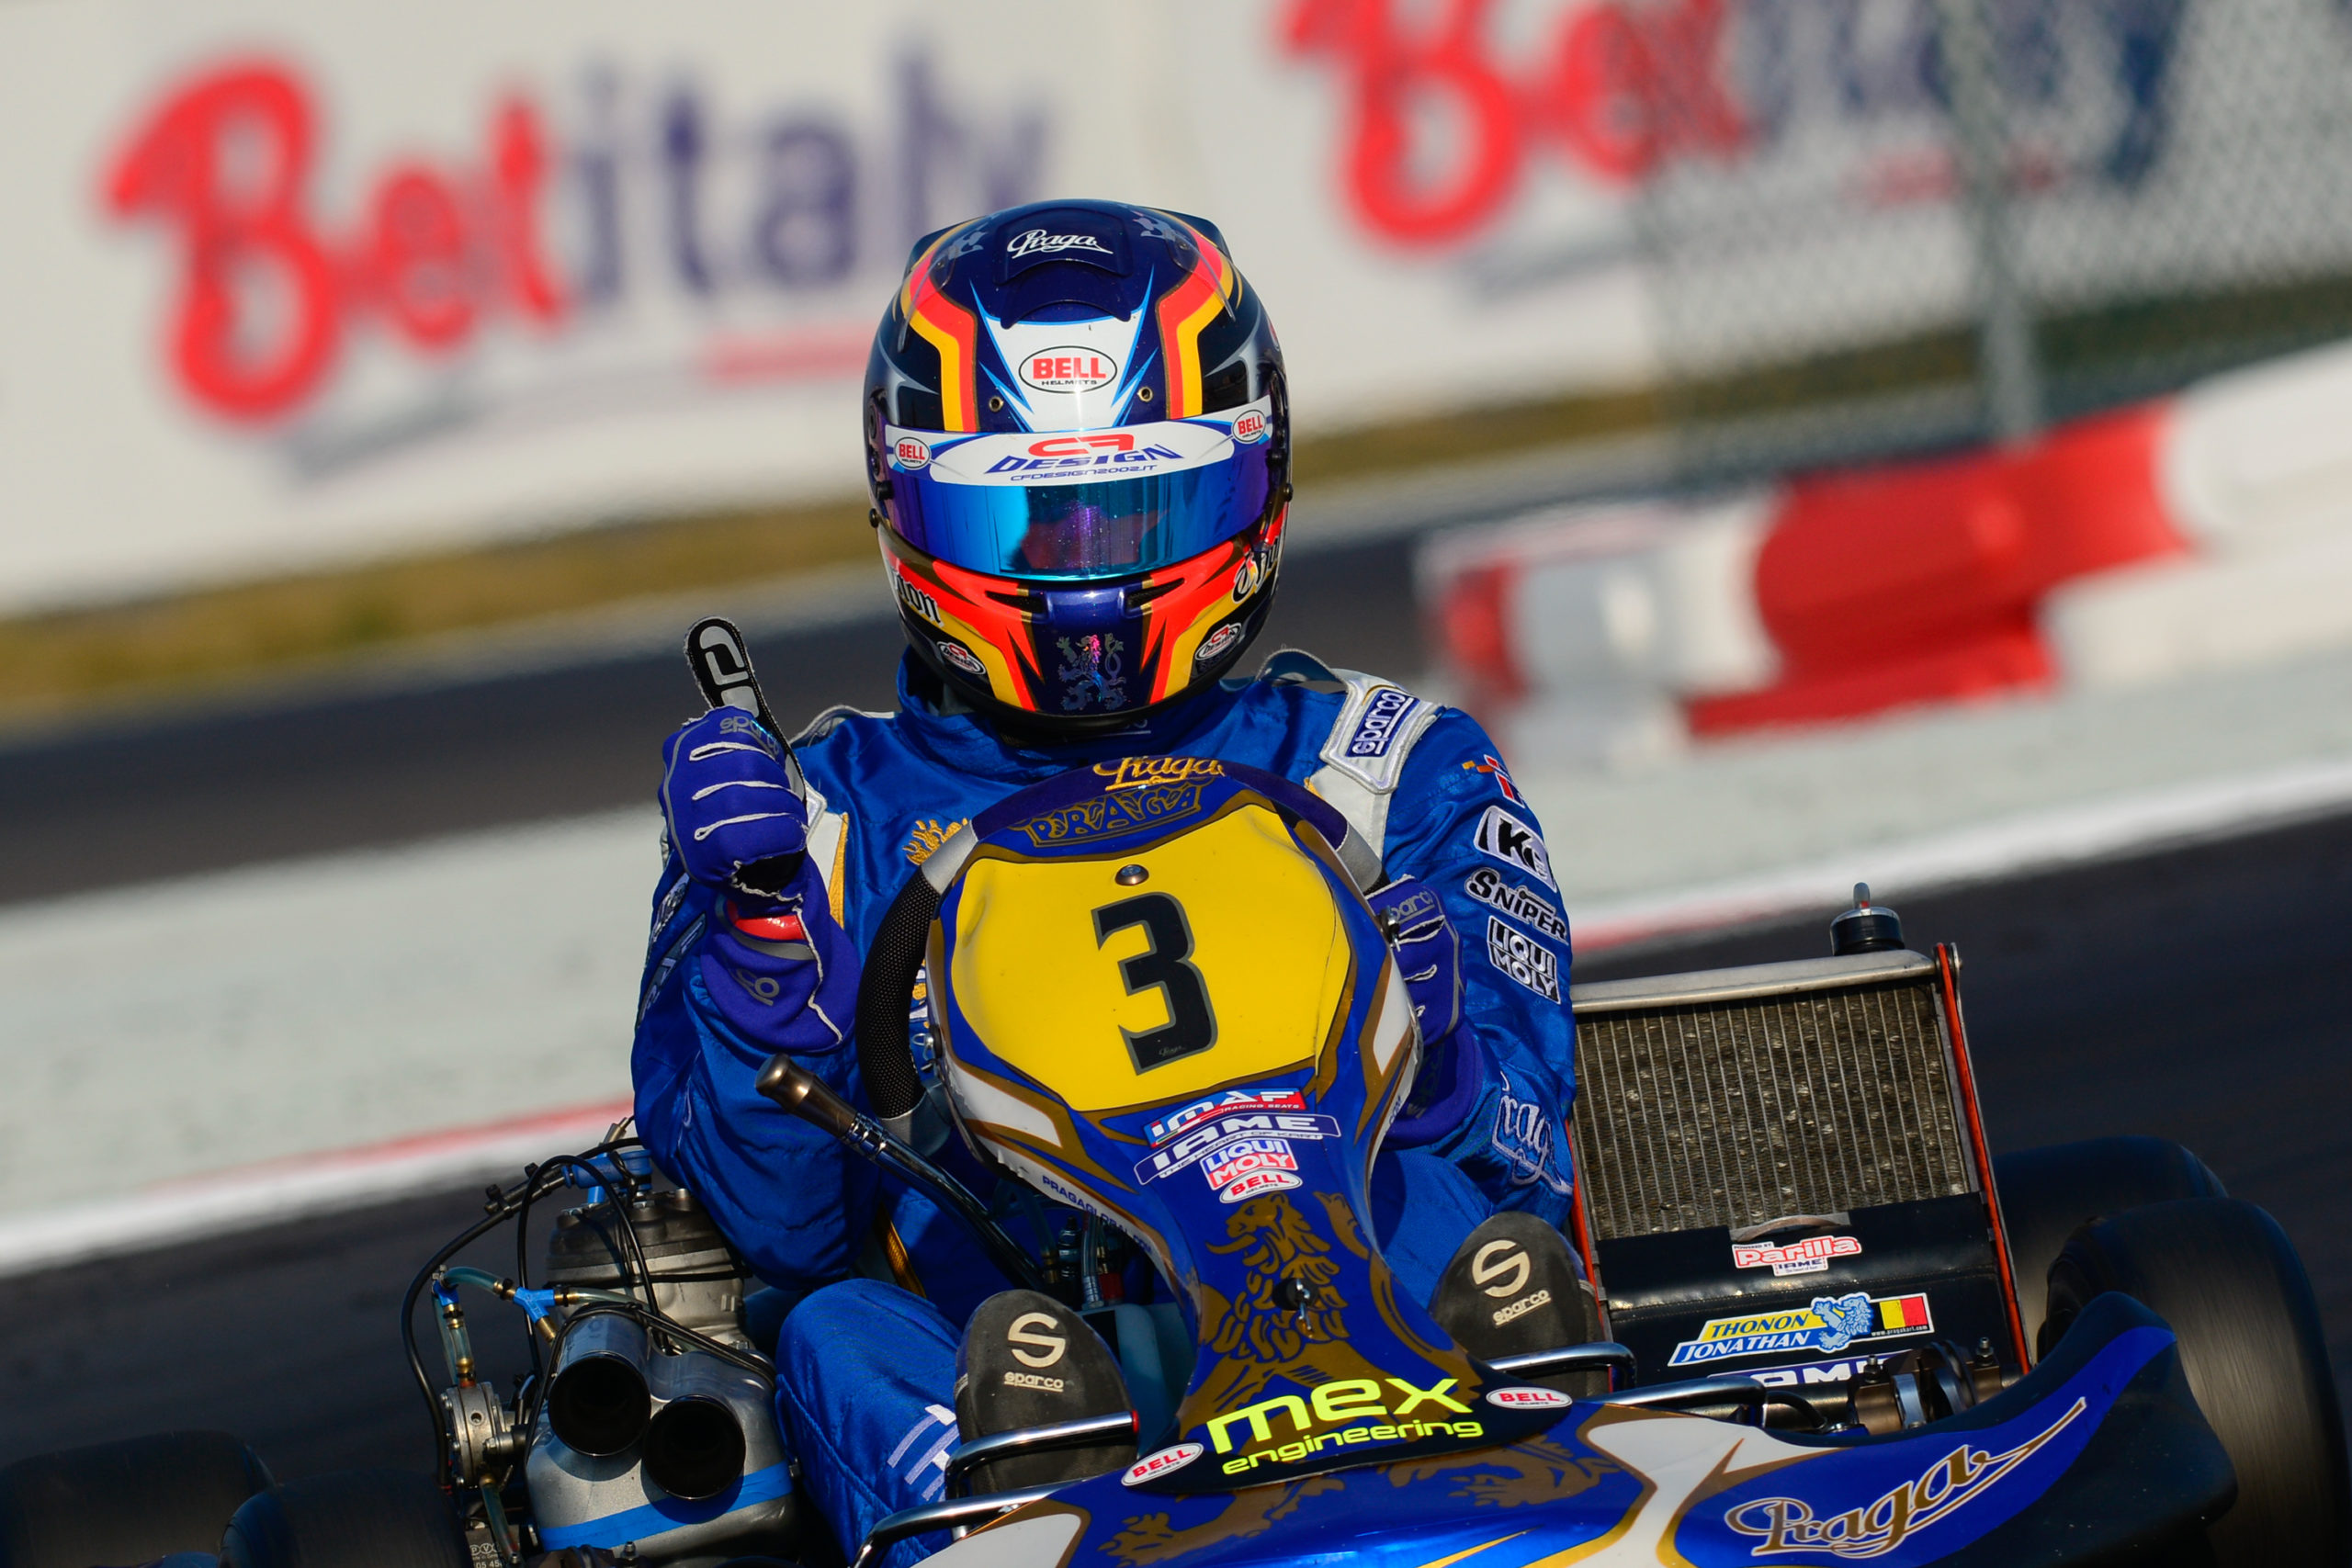 Praga factory team started the season with the podium finish